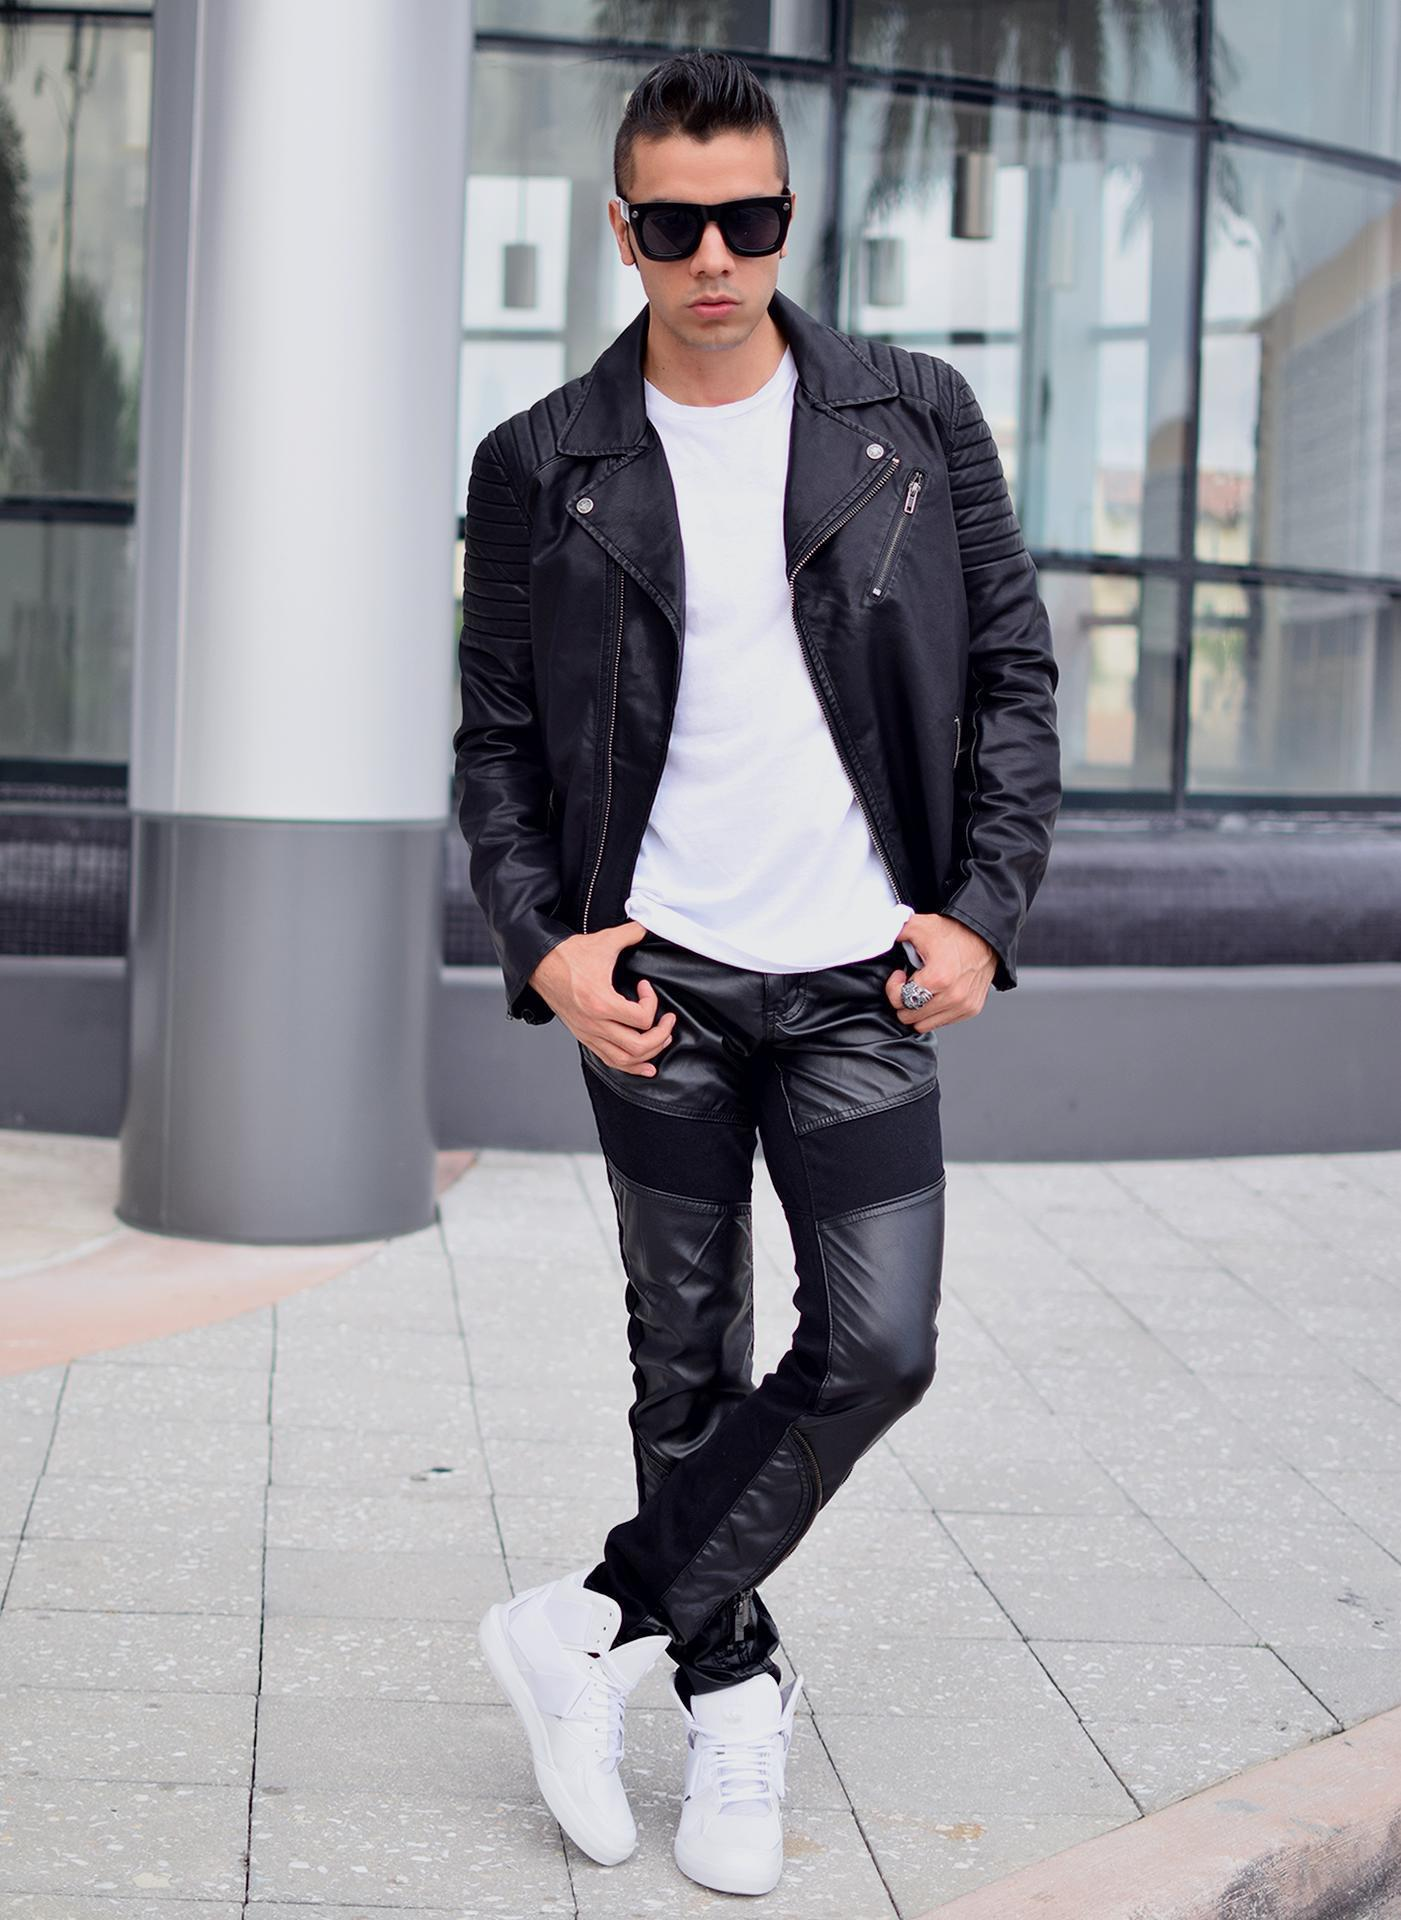 How To Wear a Black Leather Jacket With Black Chinos | Men's Fashion